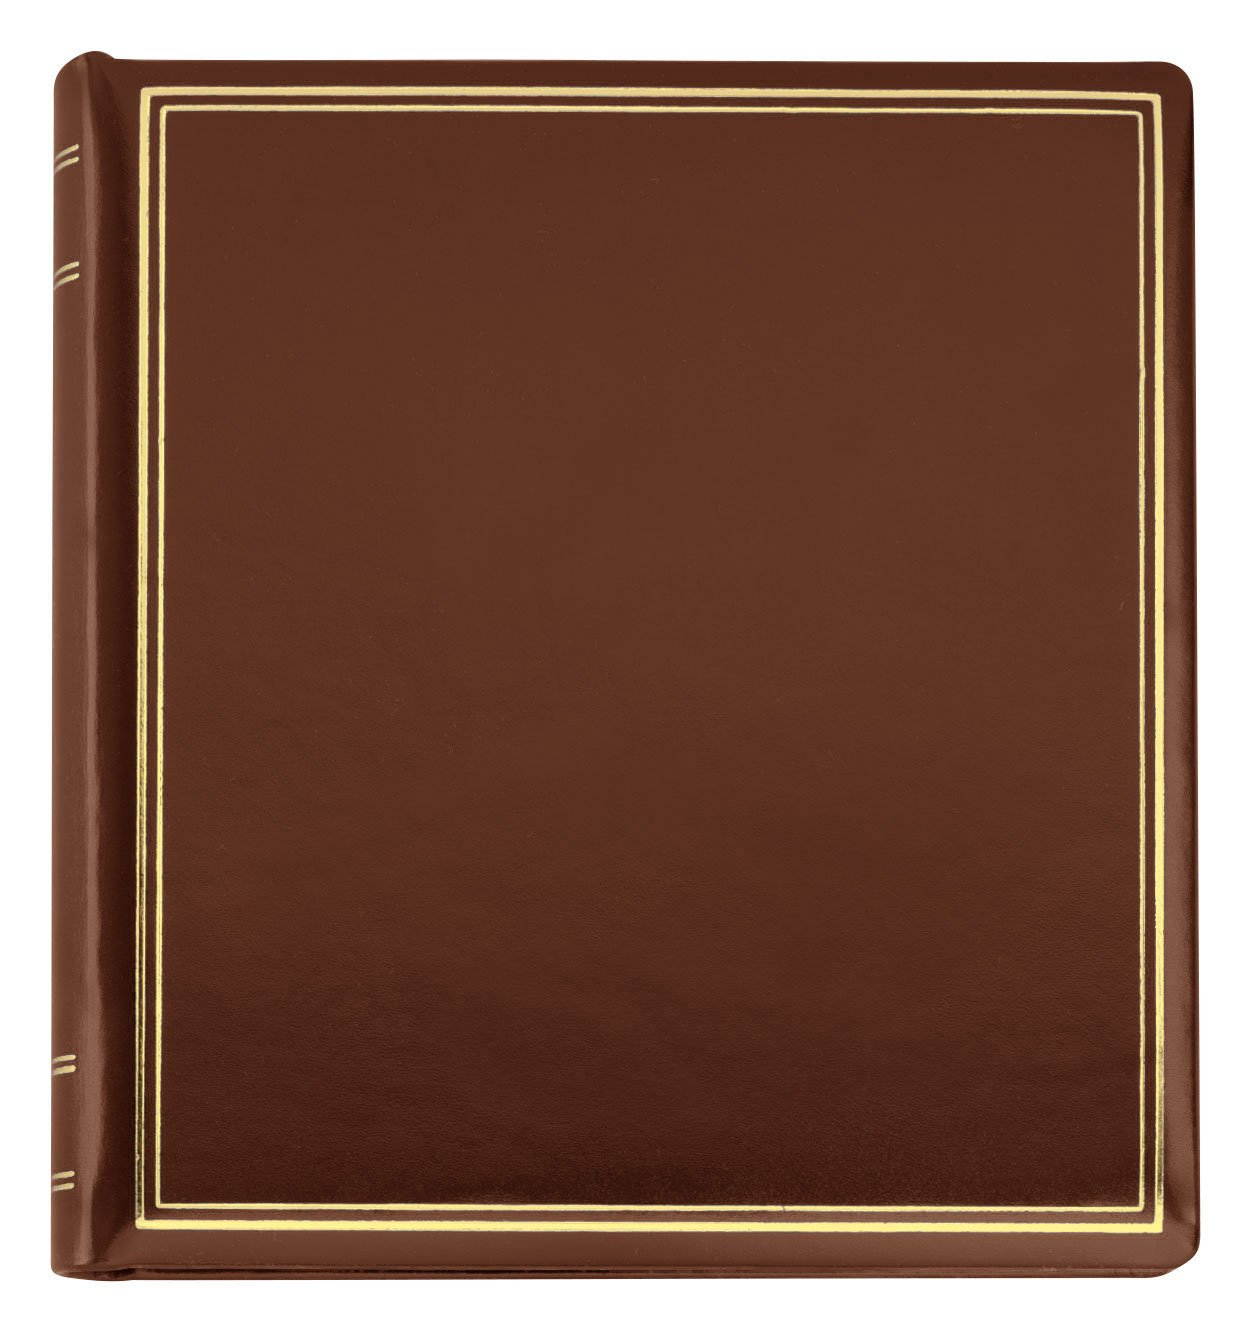 Presidential Leather Photo Album by Exposures